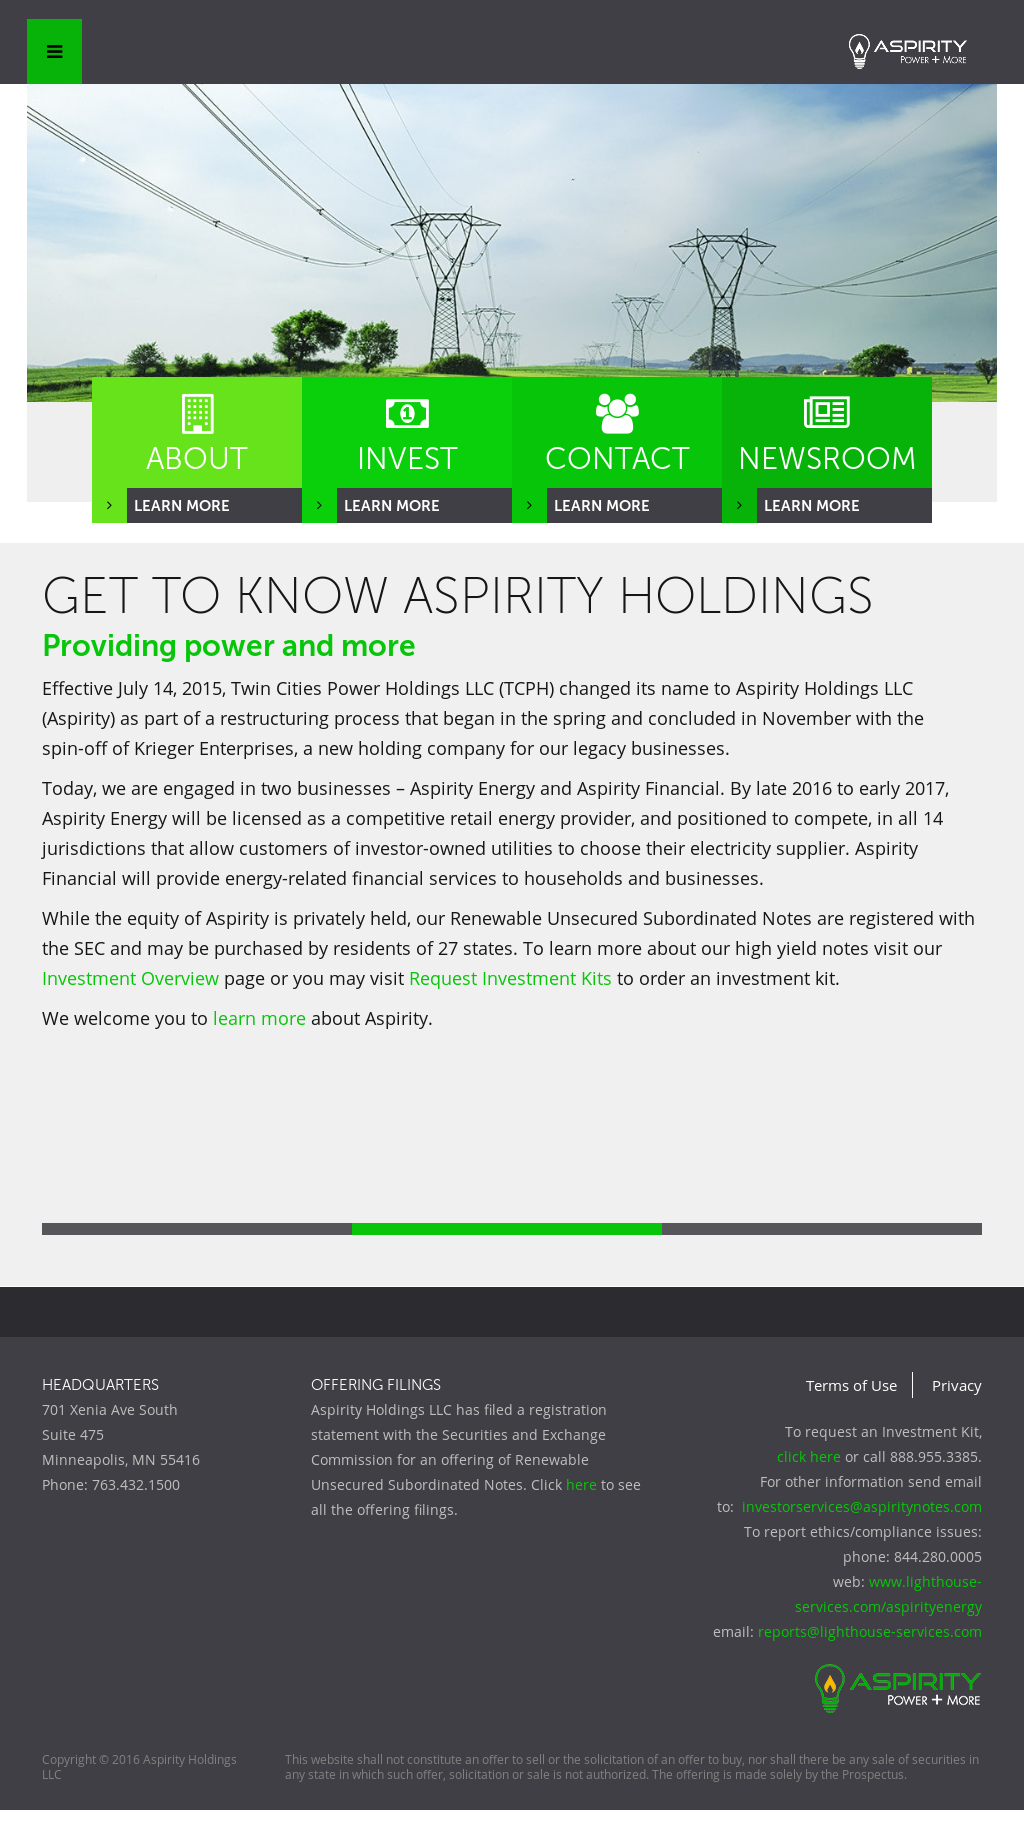 is aspirity holdings a good investment Aspirity Holdings Competitors, Revenue and Employees - Owler Company ...